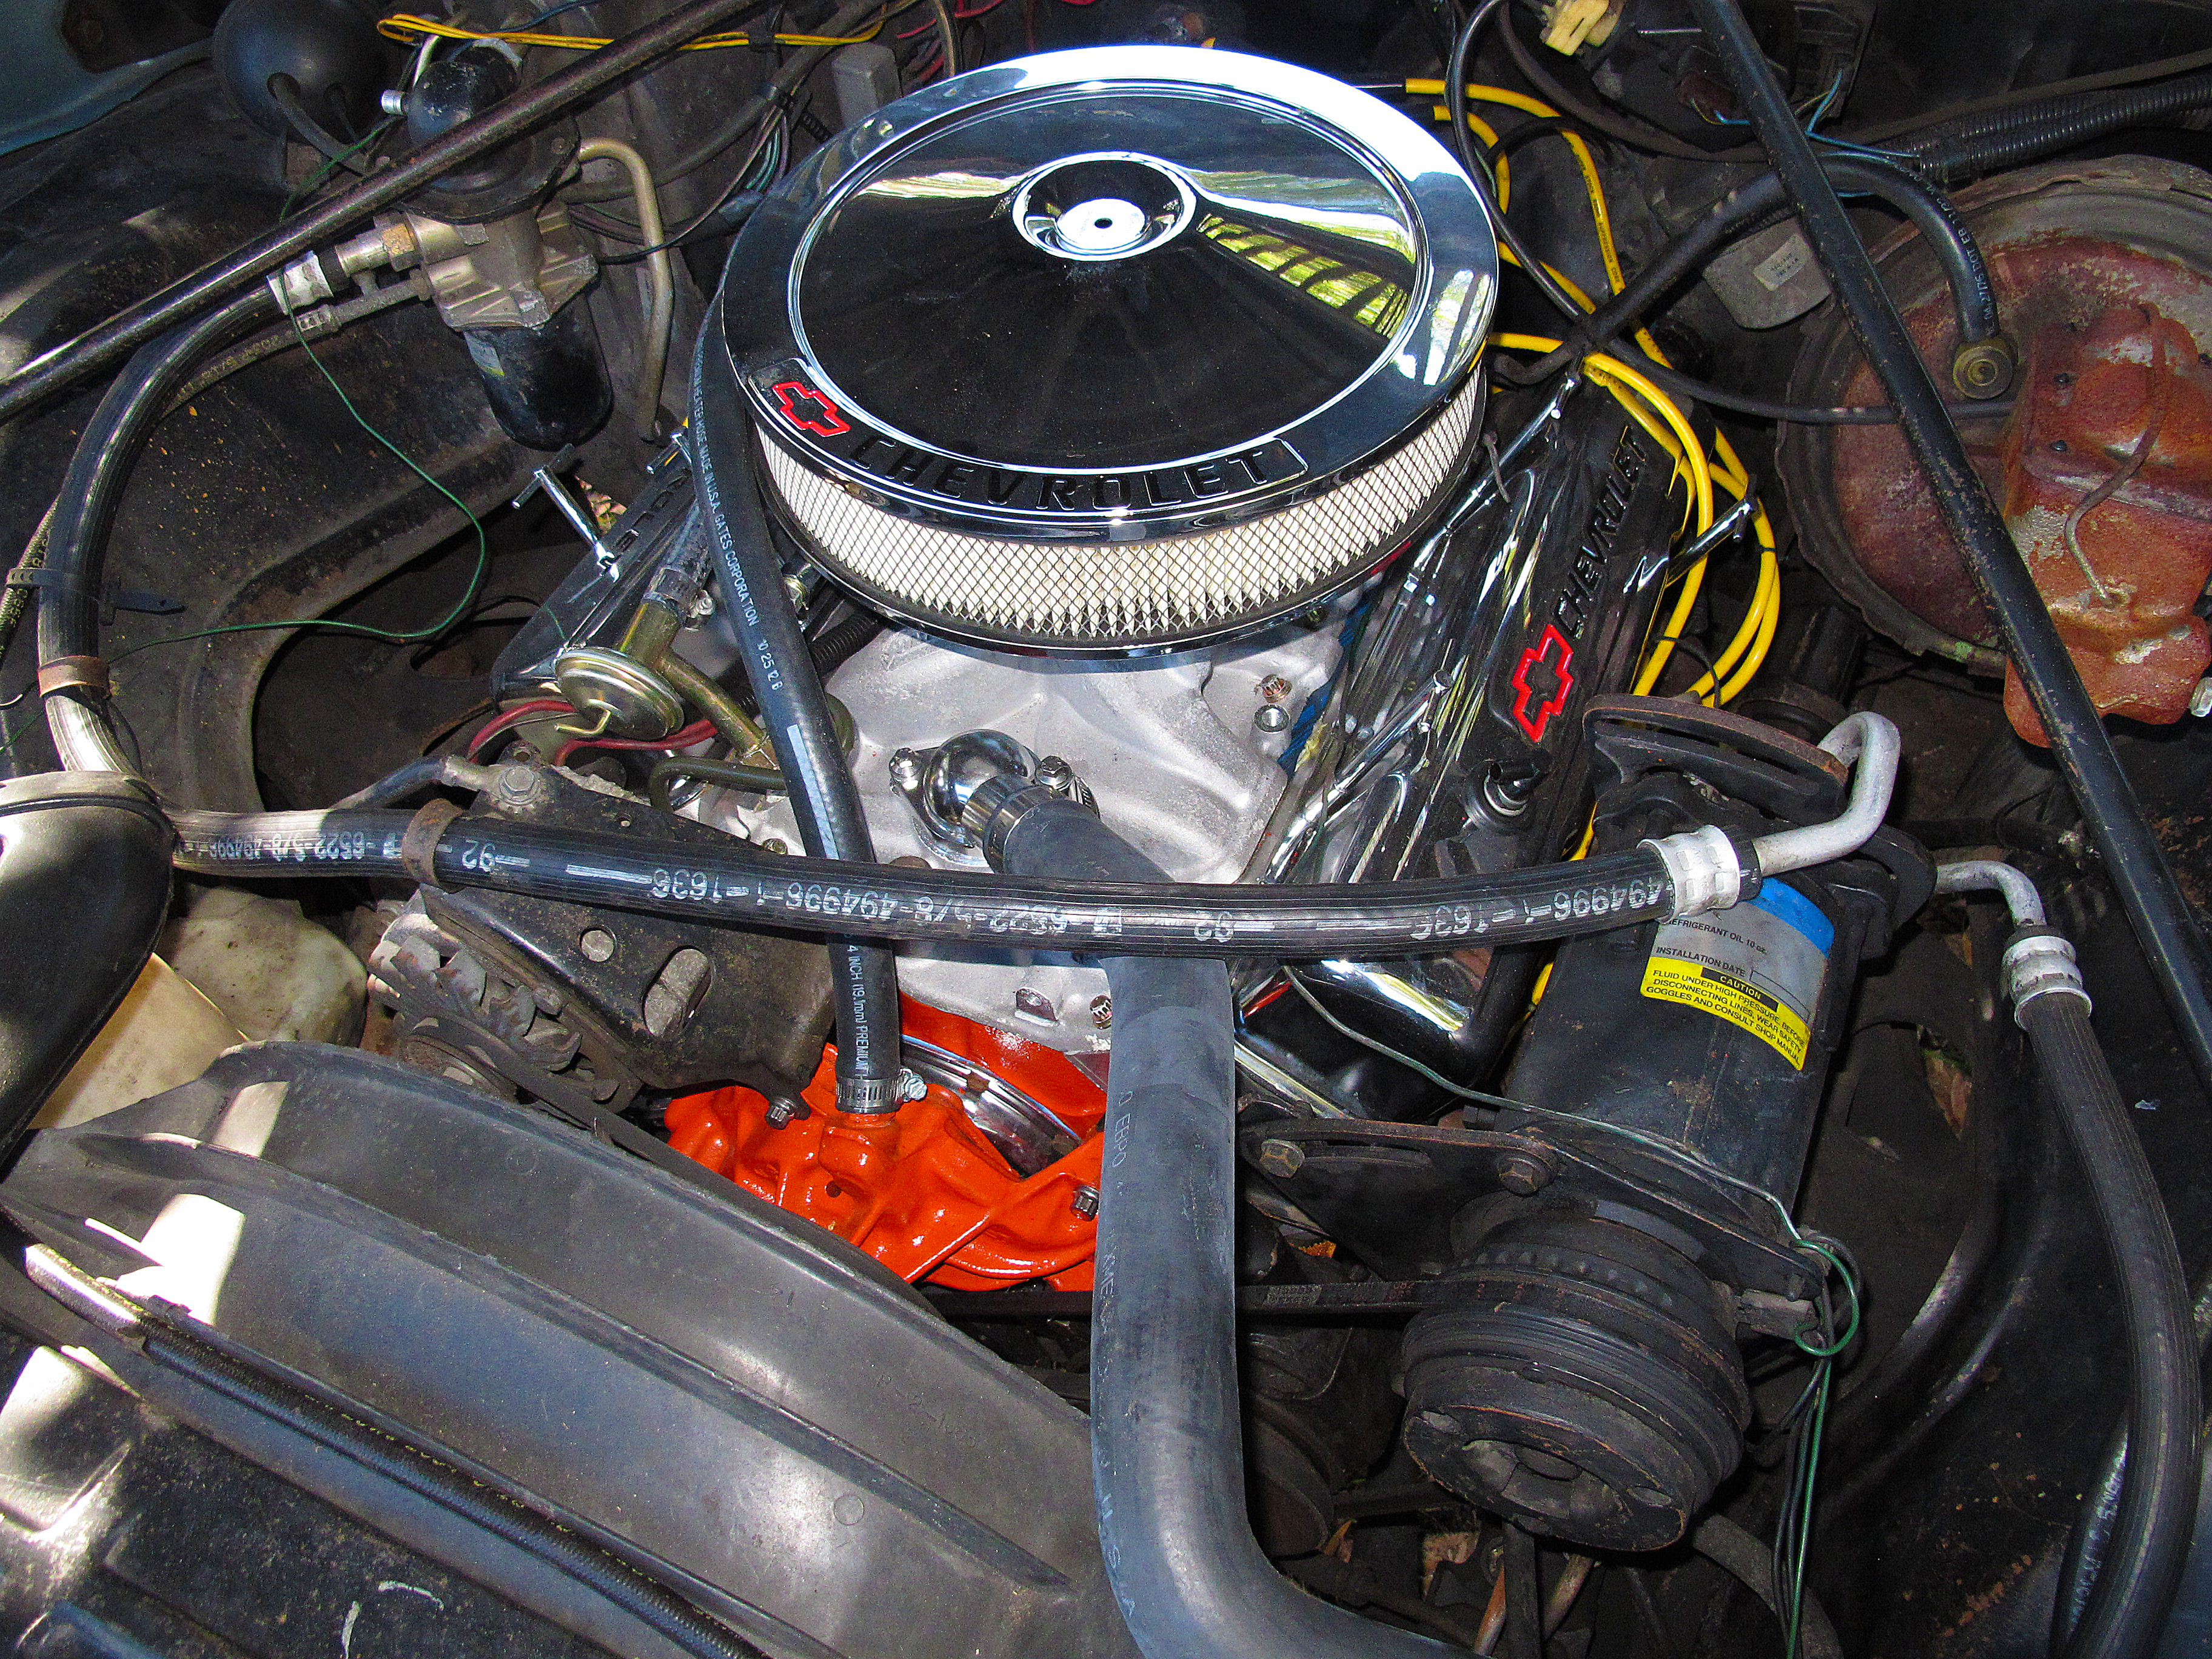 Chevrolet Zz6 Small Block V8 Crate Engine Priced At 7125 additionally 1963 1967 C2 Replacement Chassis moreover Mountain Of Torque Remembering The Short Lived Big Block Chevrolet Avalanche likewise Narrow Bay Street Rod Brackets also Drawings exploded views. on chevy 350 accessory drive …